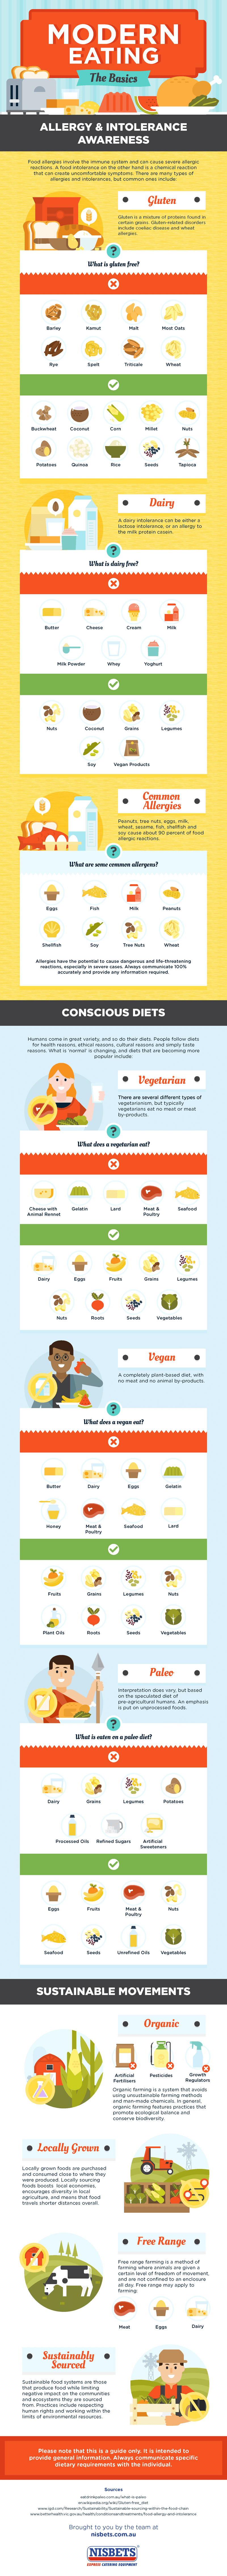 Modern Eating Habits - Infographic